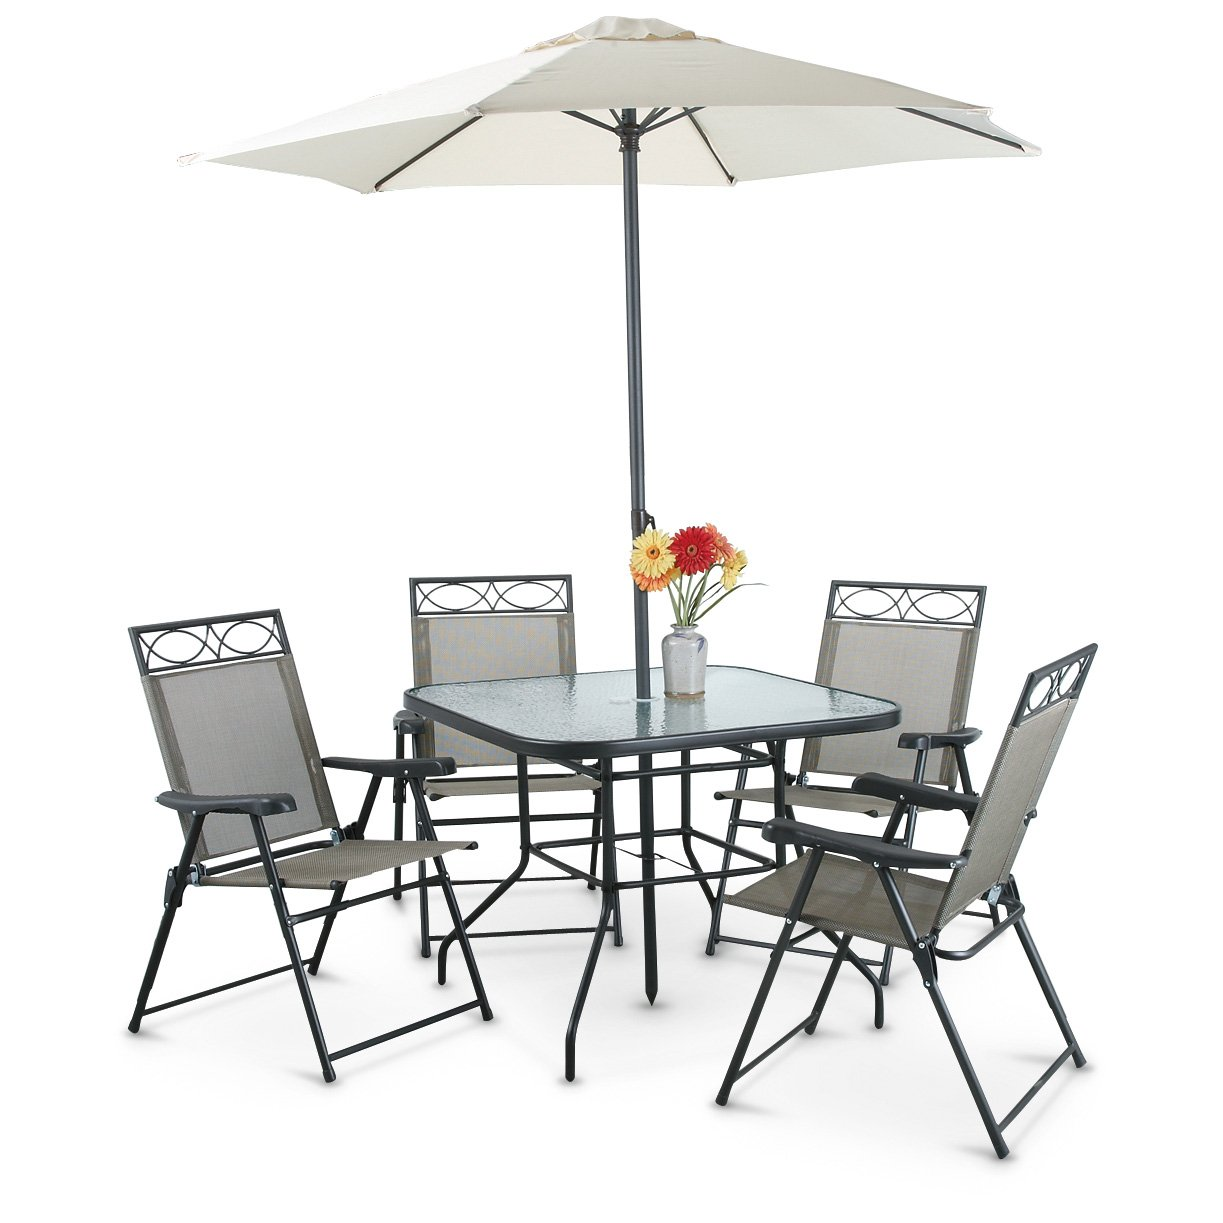 CASTLECREEK Deluxe Outdoor Patio Table & Chairs Furniture Set, 6 Piece